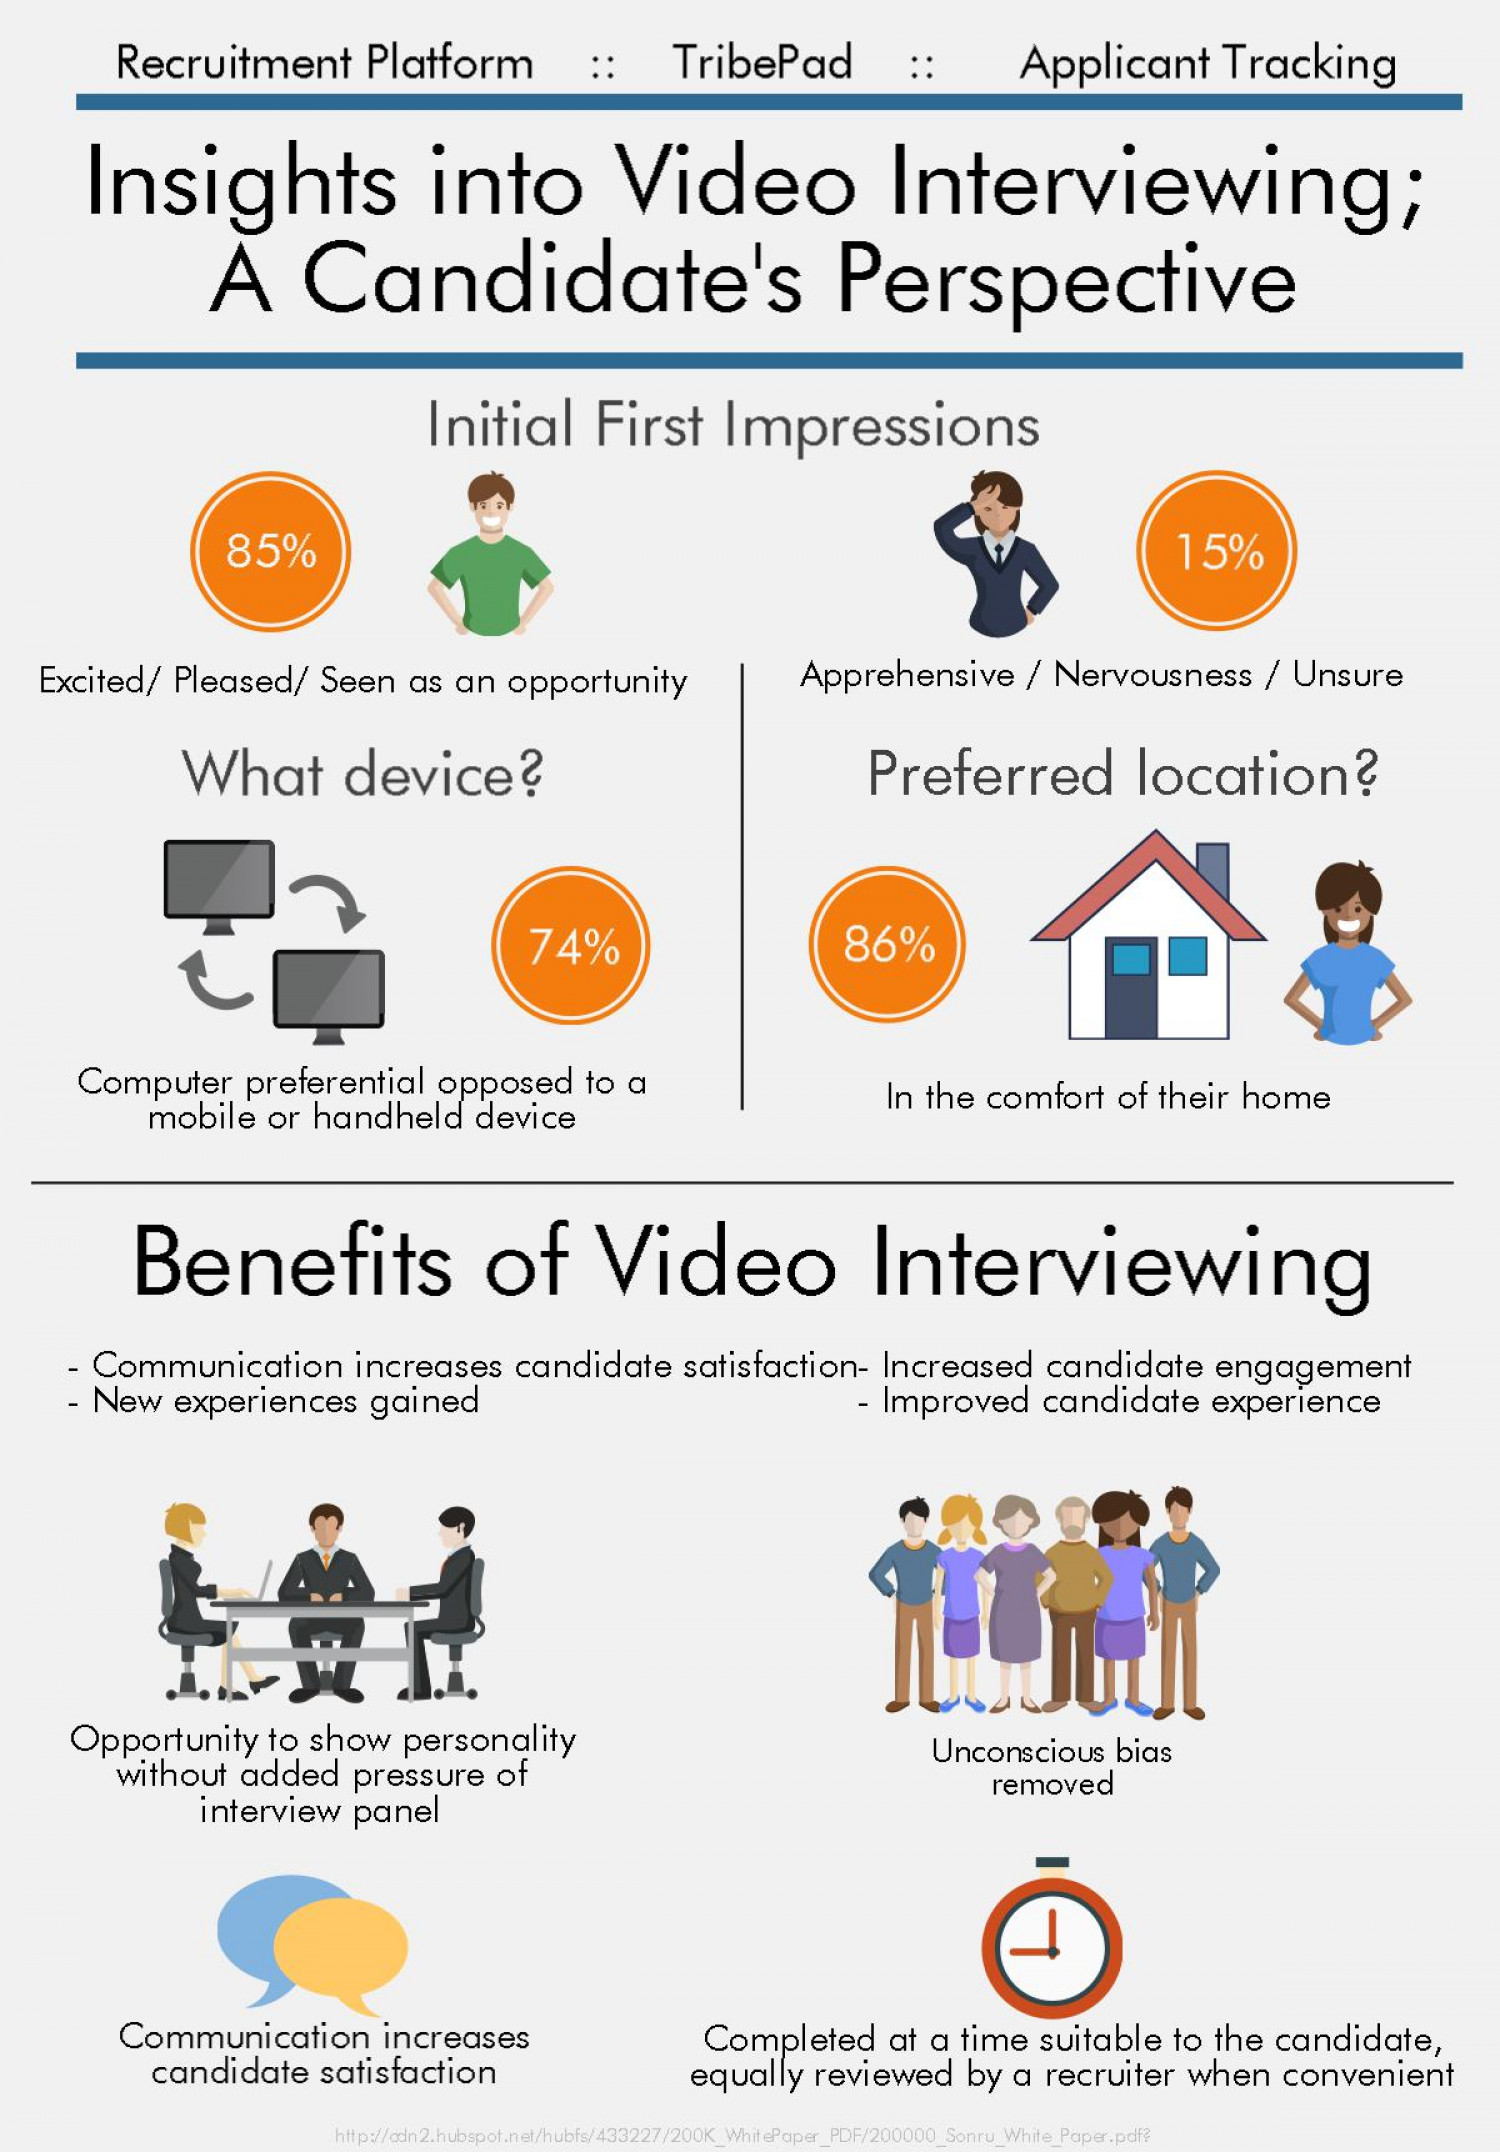 Insights into Video Interviewing - A Candidate's Perspective Infographic